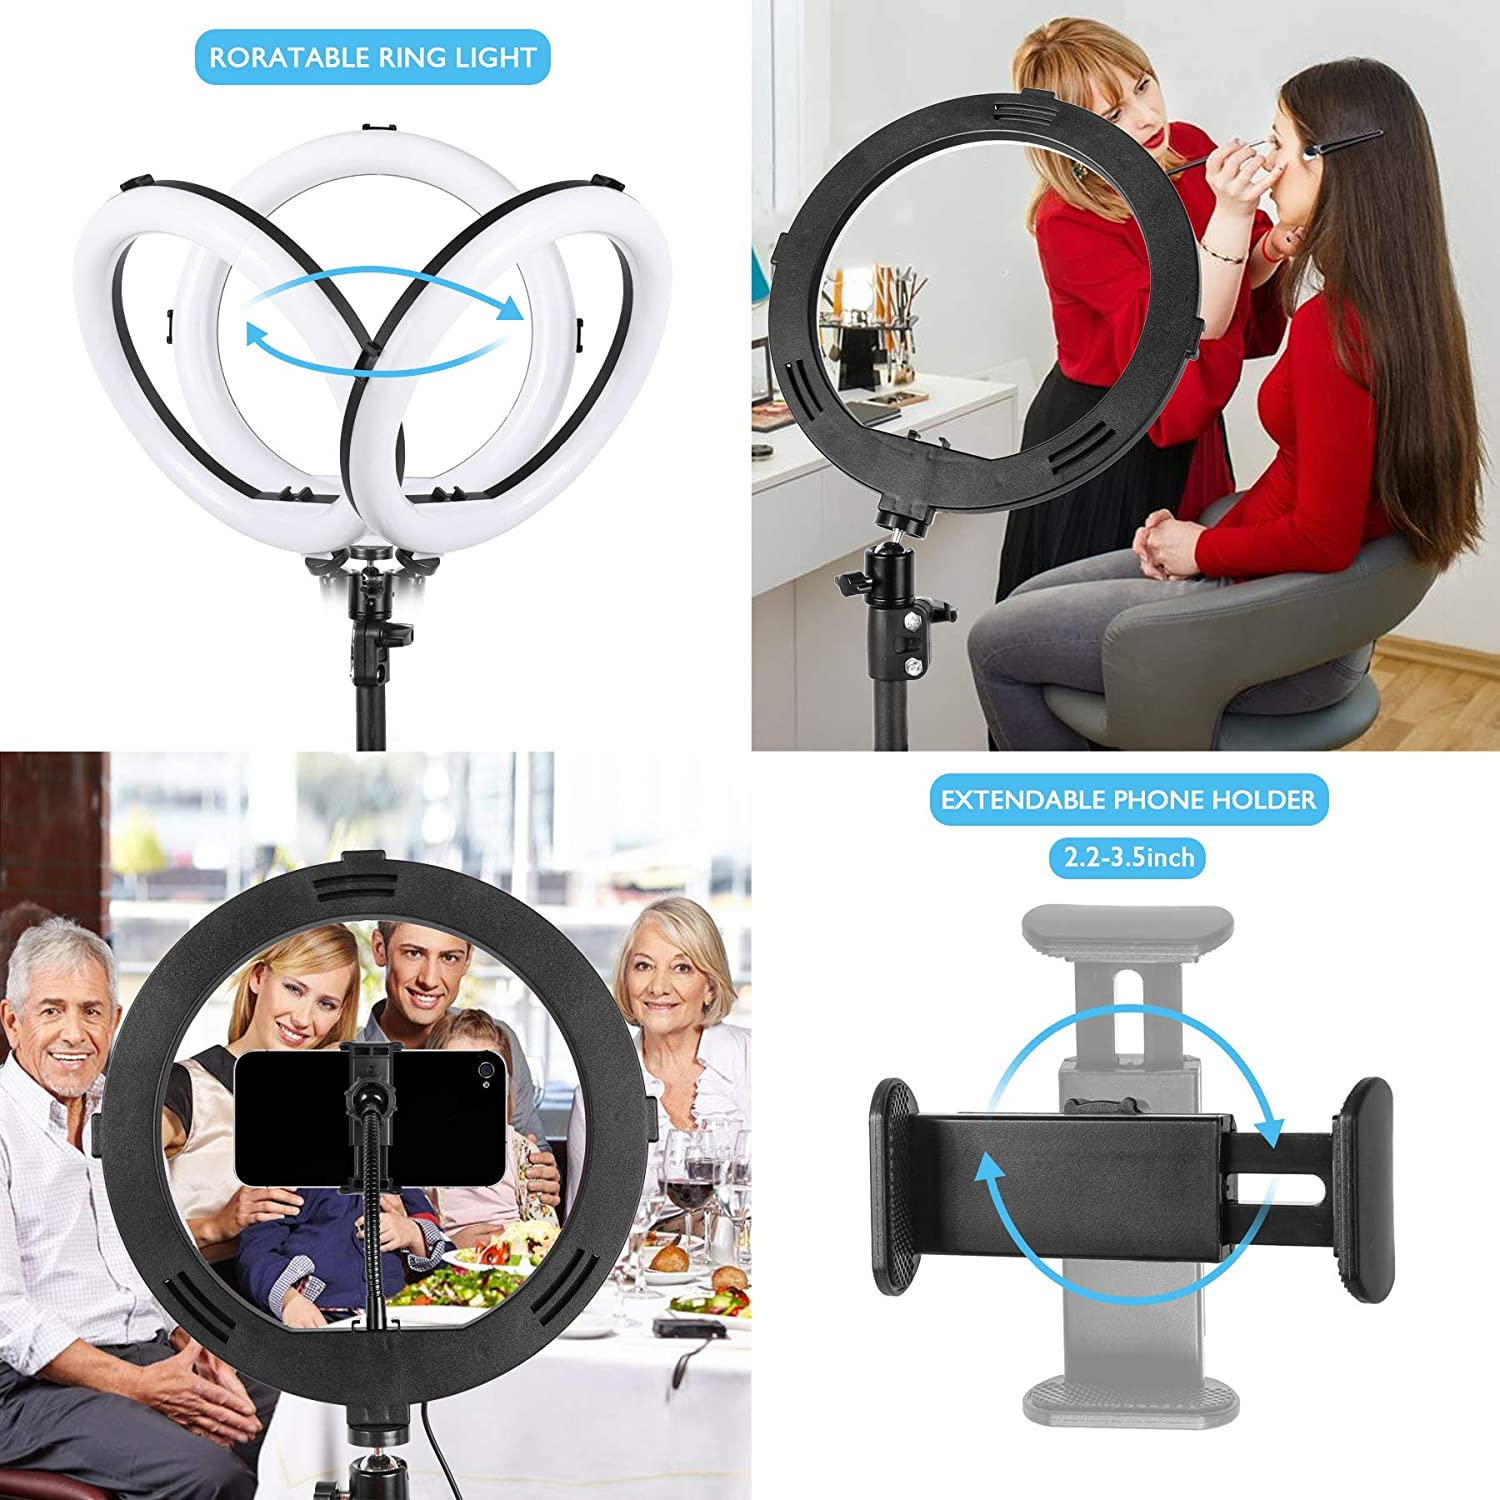 10 Selfie Ring Light with Flexible Phone Holder /& 39.1 Extendable Tripod Stand for Live Stream Makeup YouTube Video TikTok Compatible with iPhone Android